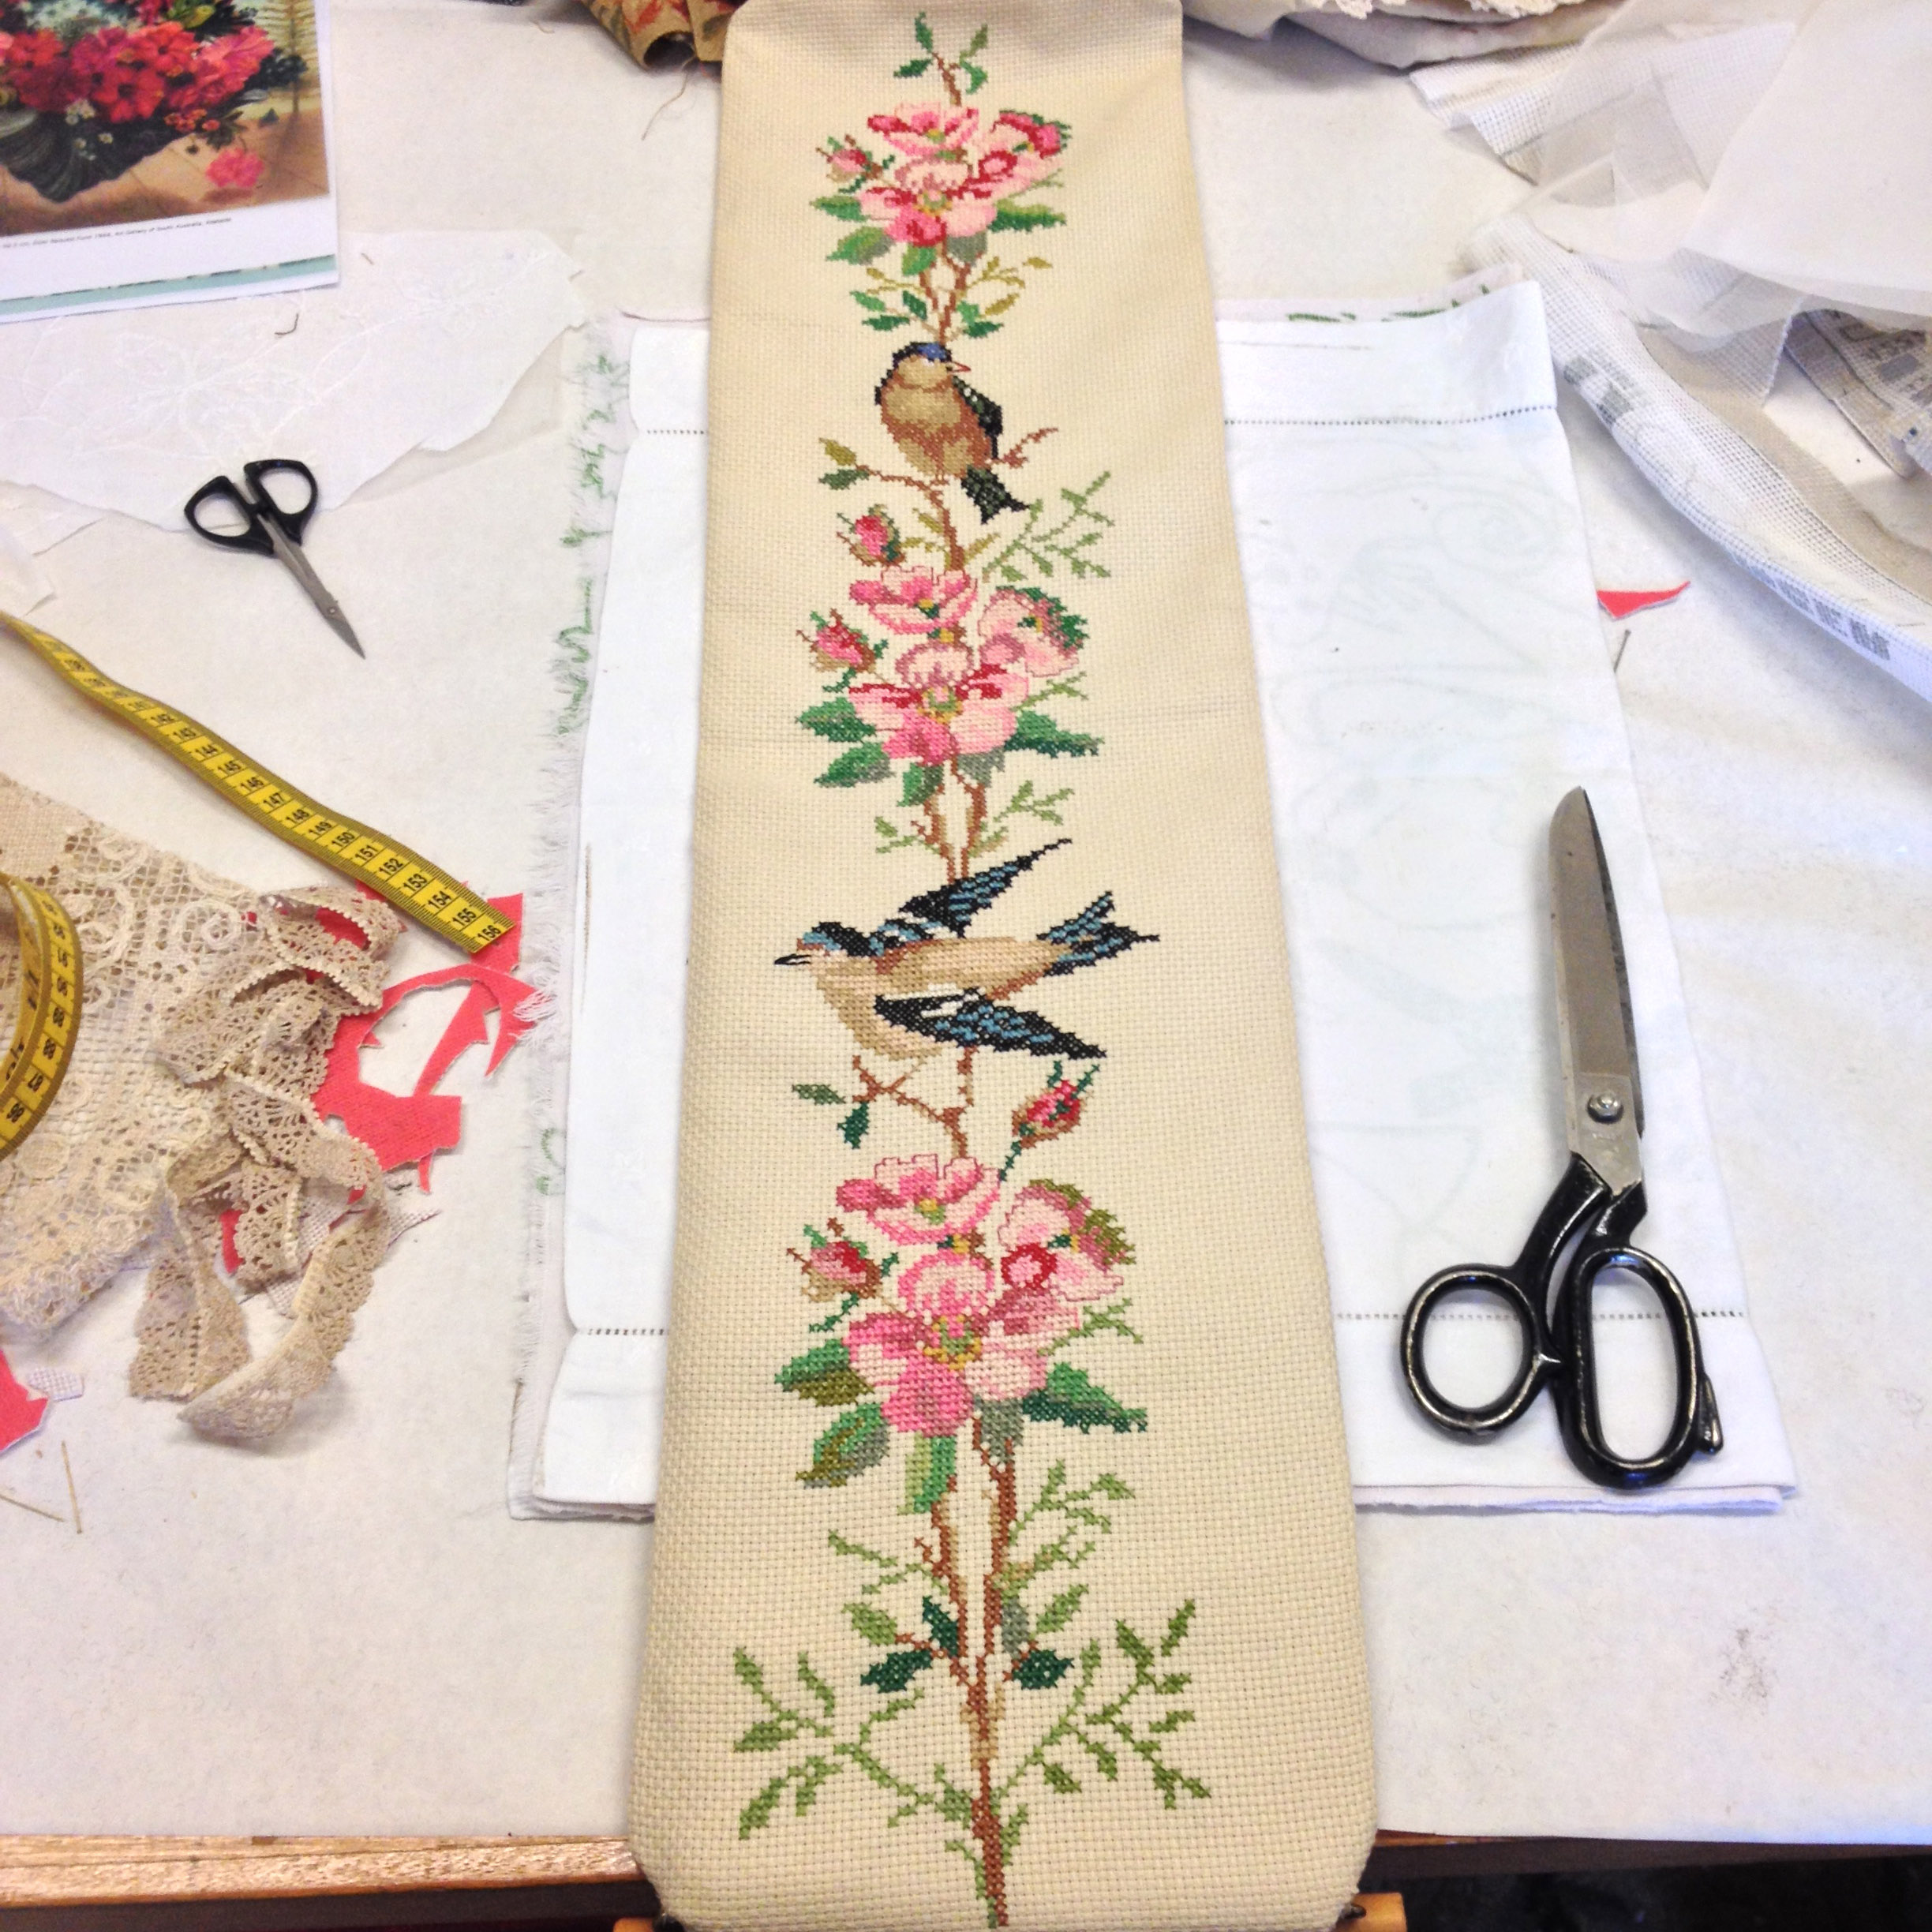 Needlepoint birds and flowers